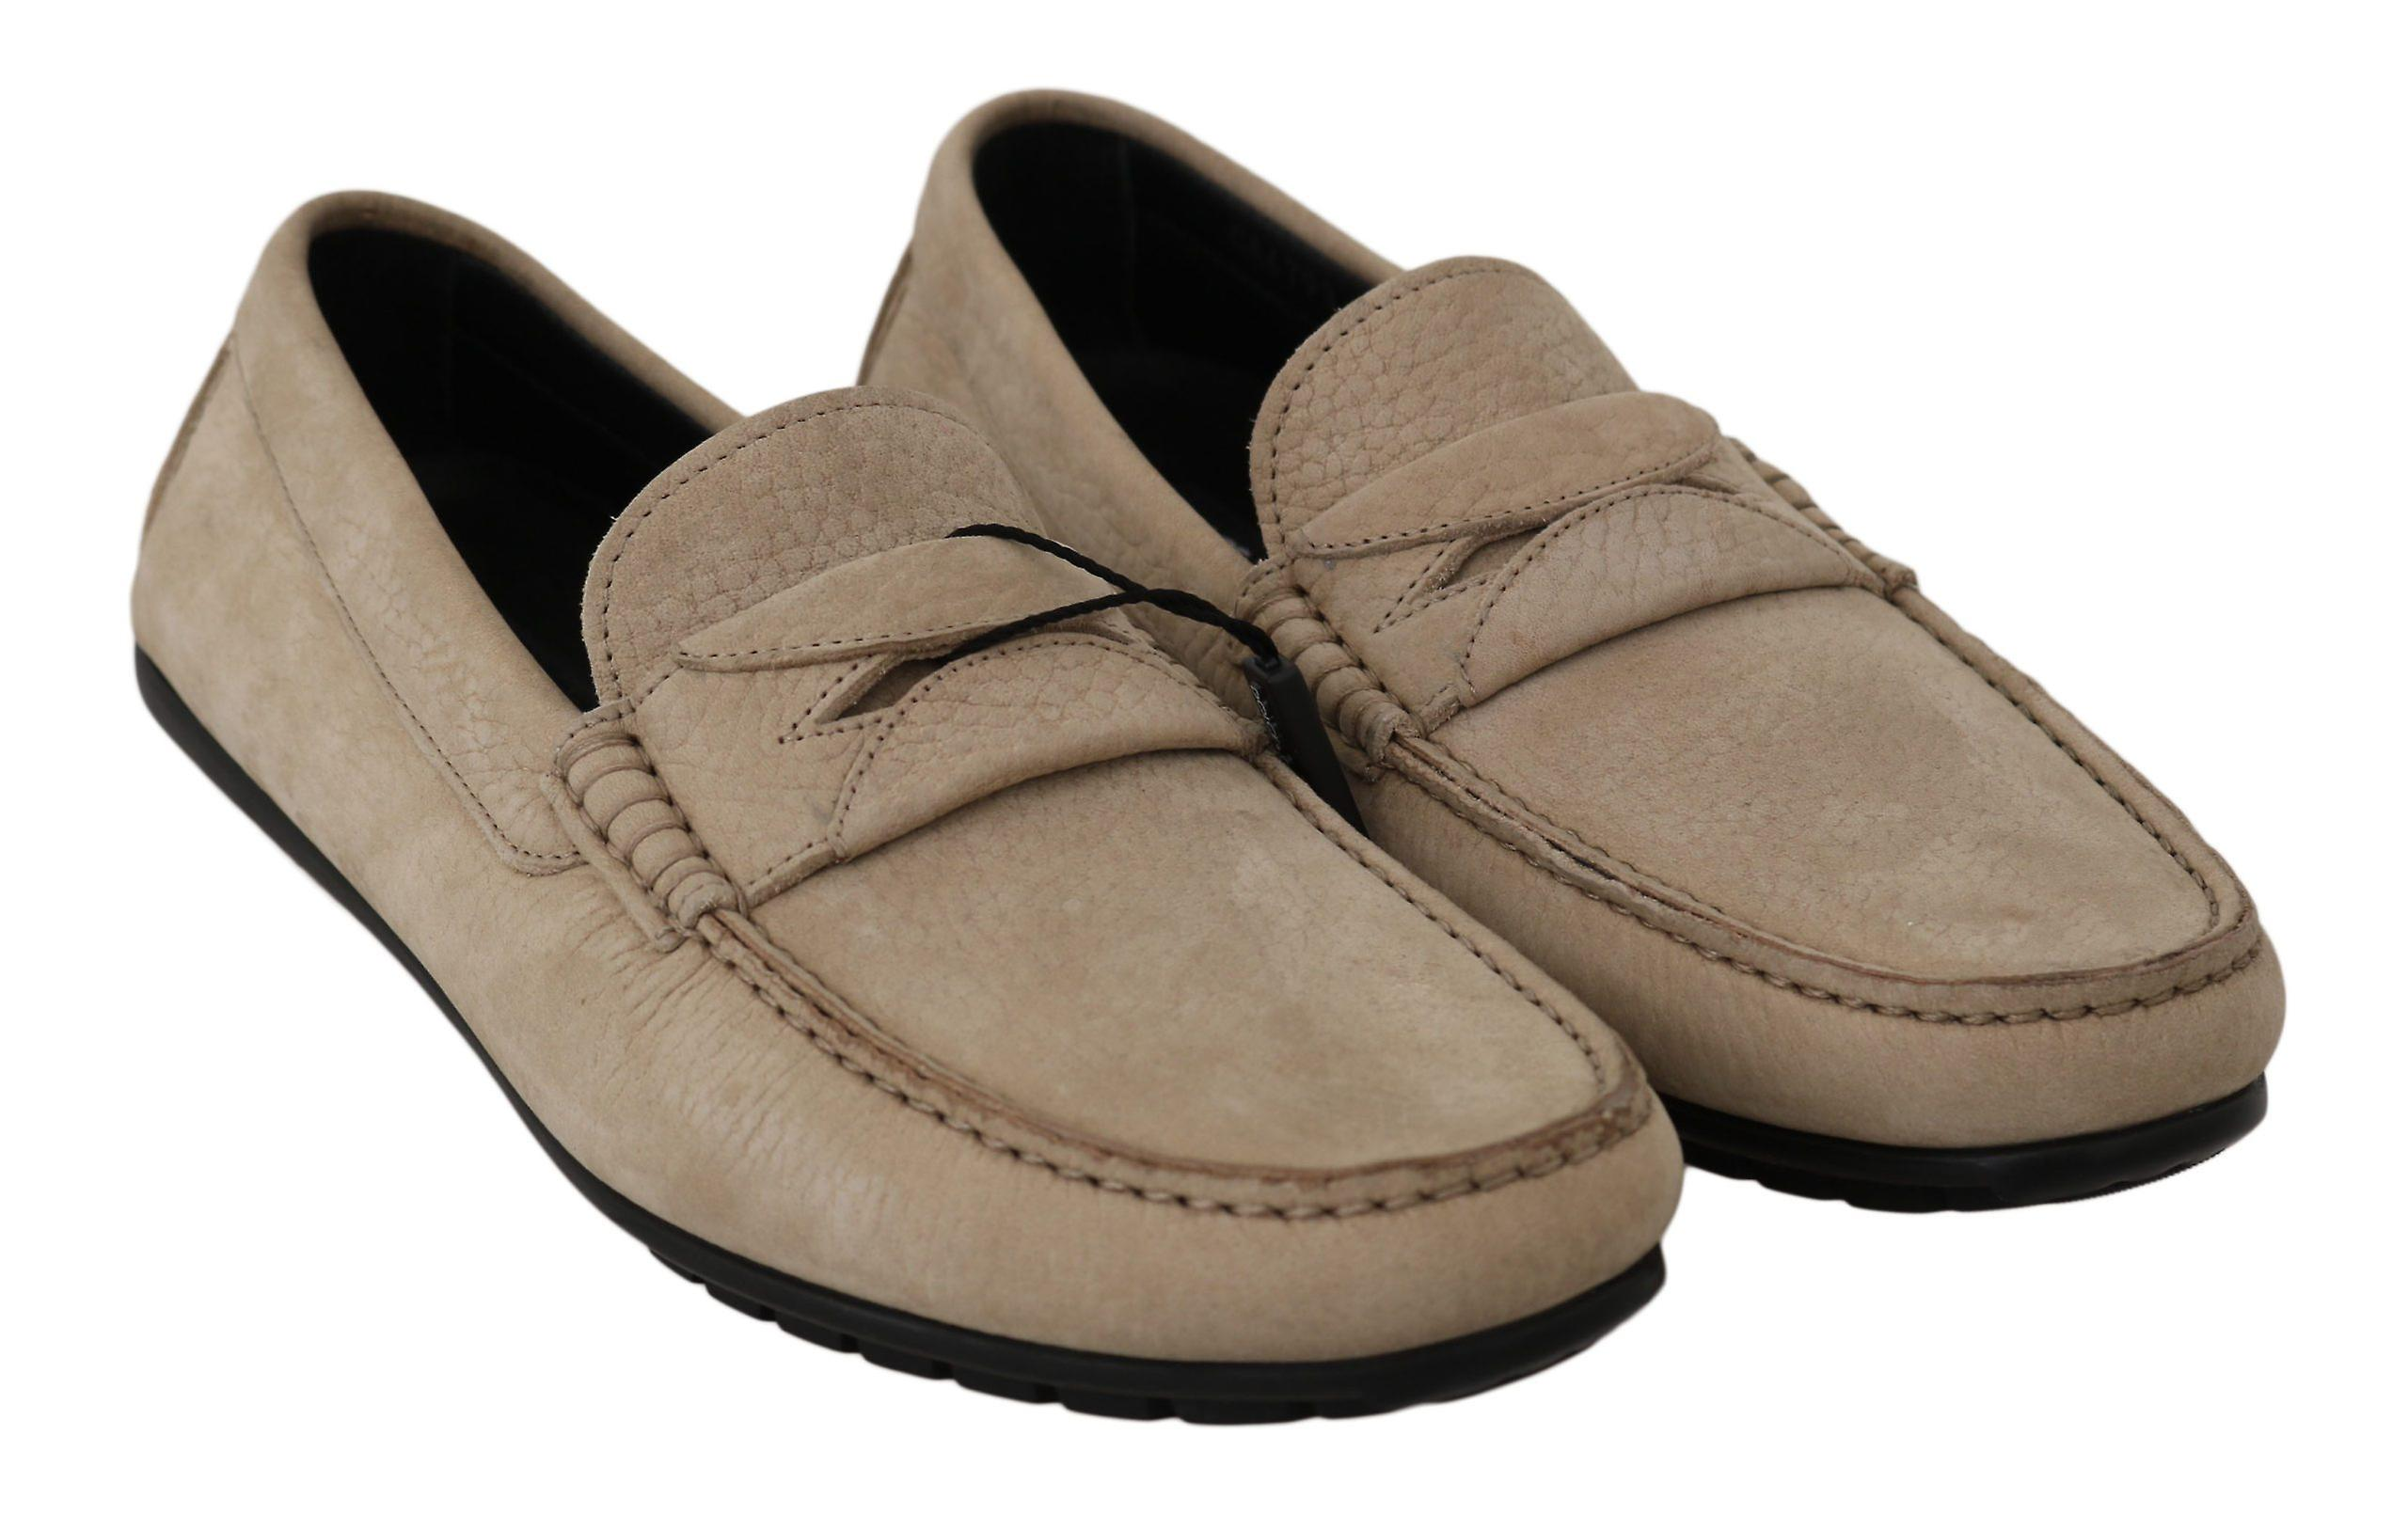 Dolce & Gabbana Beige Leather Flat Loafers Casual Mens Shoes MV2370-39